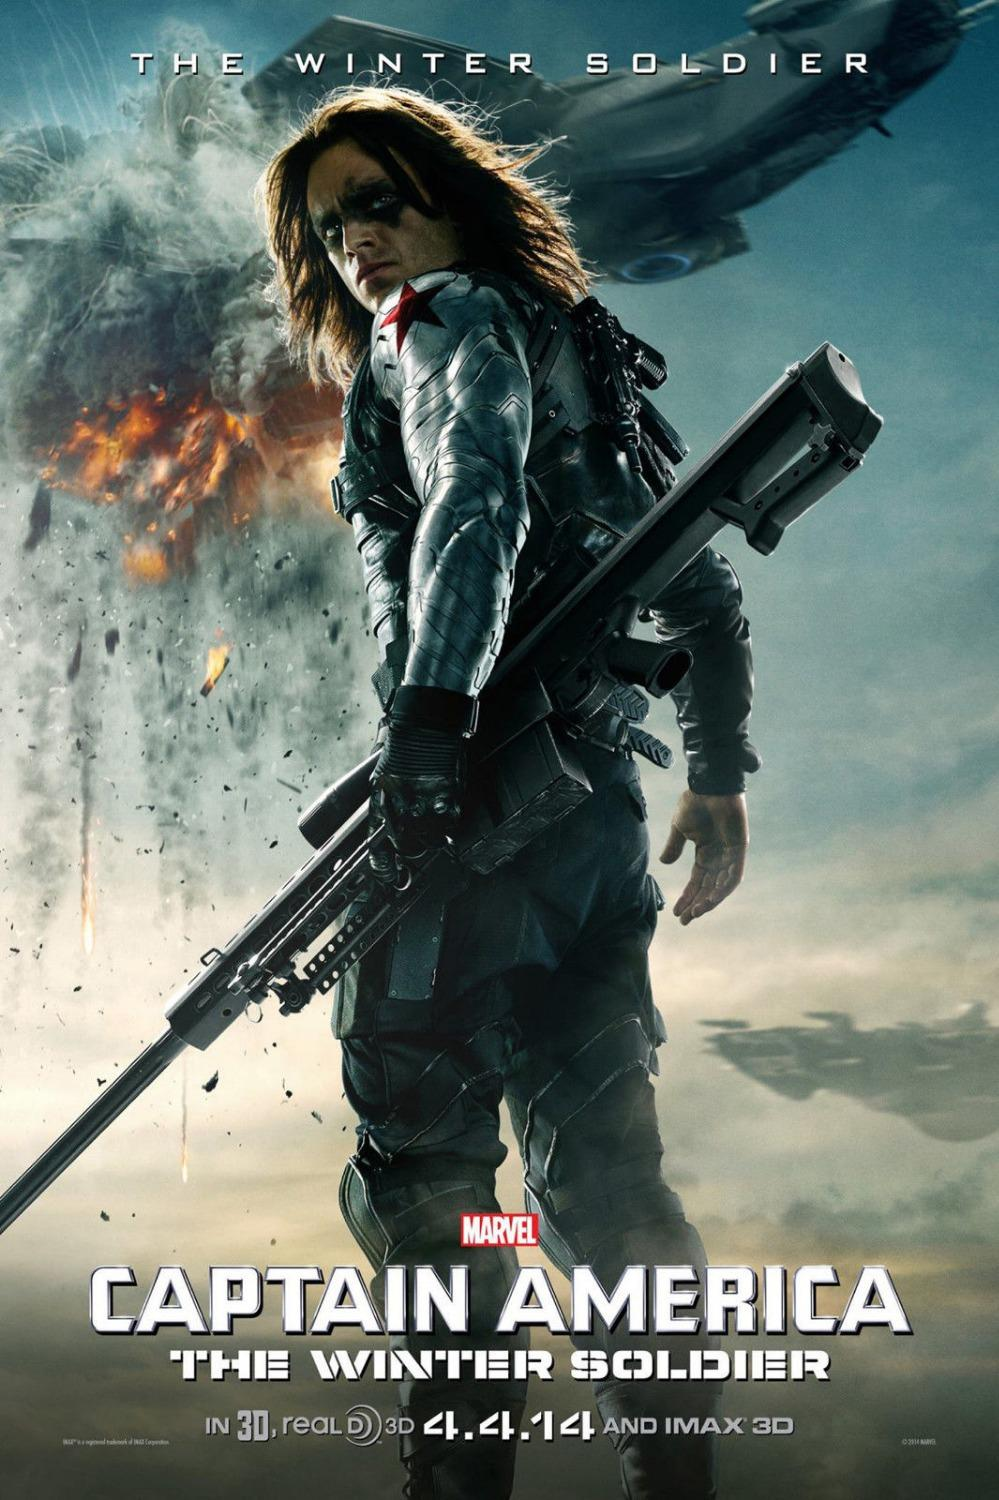 0730 40x60cm Captain America 2 2014 Winter Soldier USA Hero Hot Movie Poster - wall sticker Home Decor poster